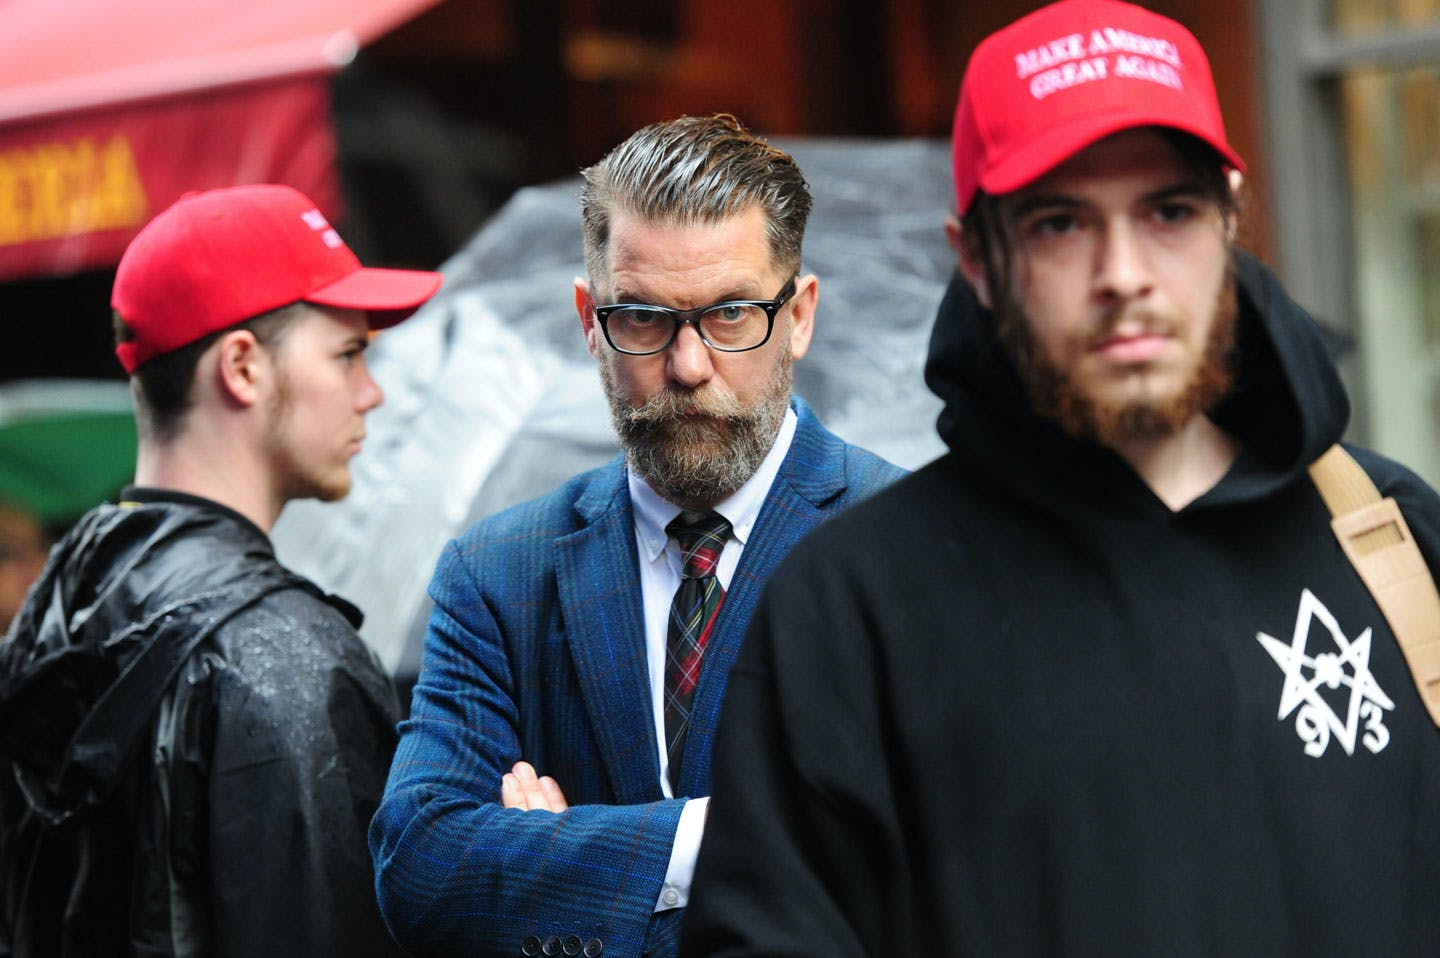 CENTER Gavin McInnes attends rally - Alt-right protestors hold rally in front of CUNY on East 42nd St. and 3rd ave to protest against CUNY's choice of Muslim-American activist Linda Sarsour as commencement speaker on Thursday May 25, 2017 (Photo by Susan Watts/NY Daily News via Getty Images)